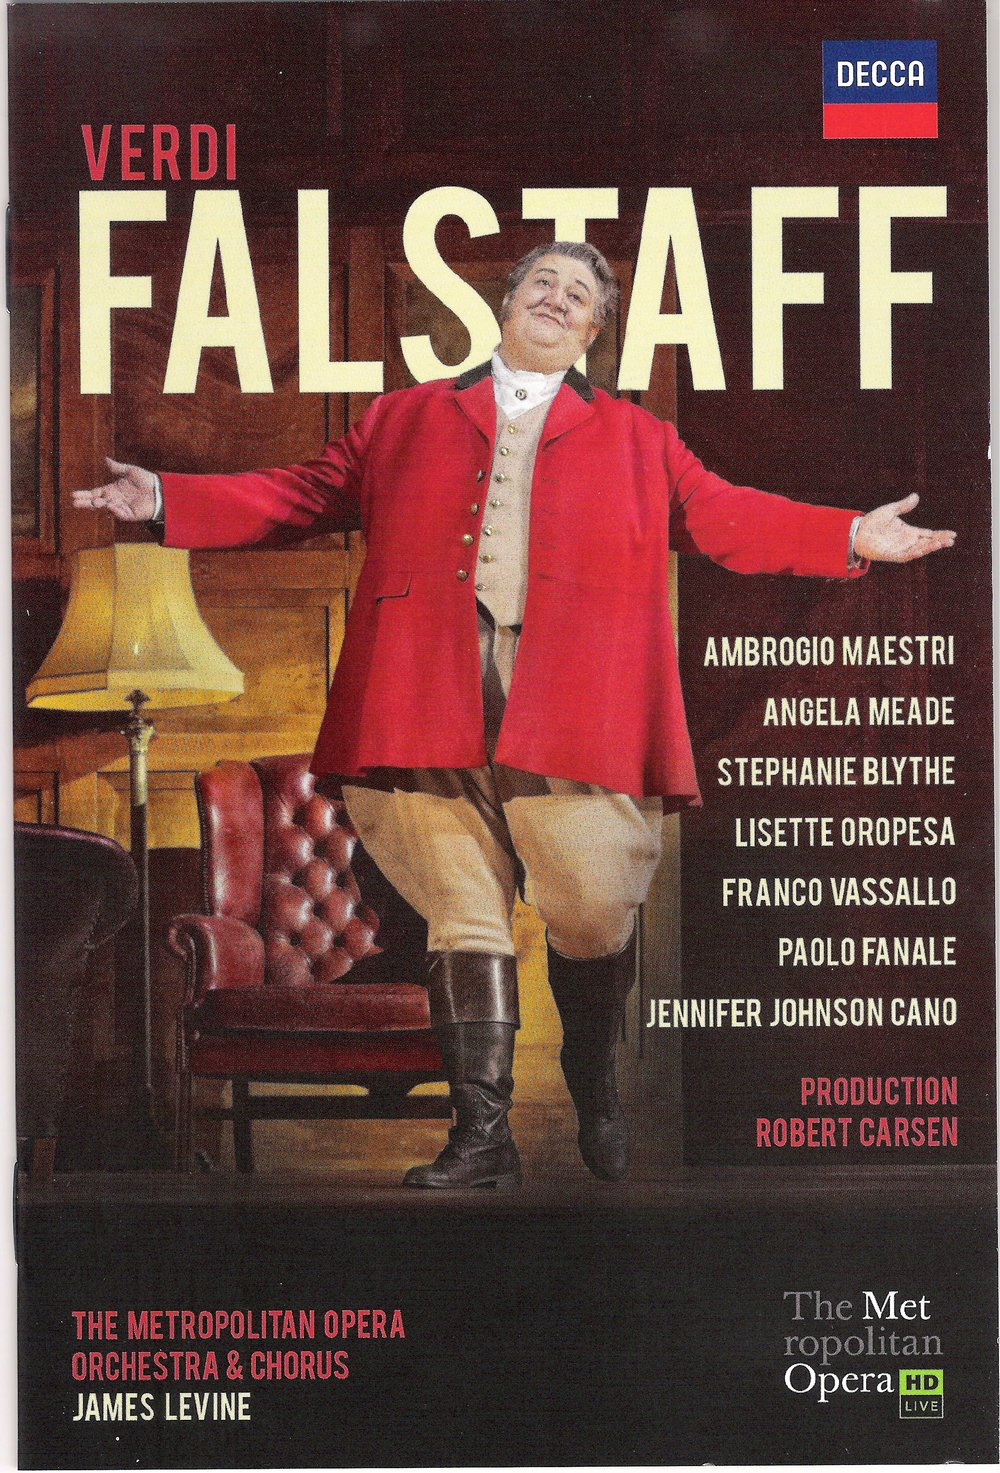 Ambrogio Maestri as Verdi's Falstaff